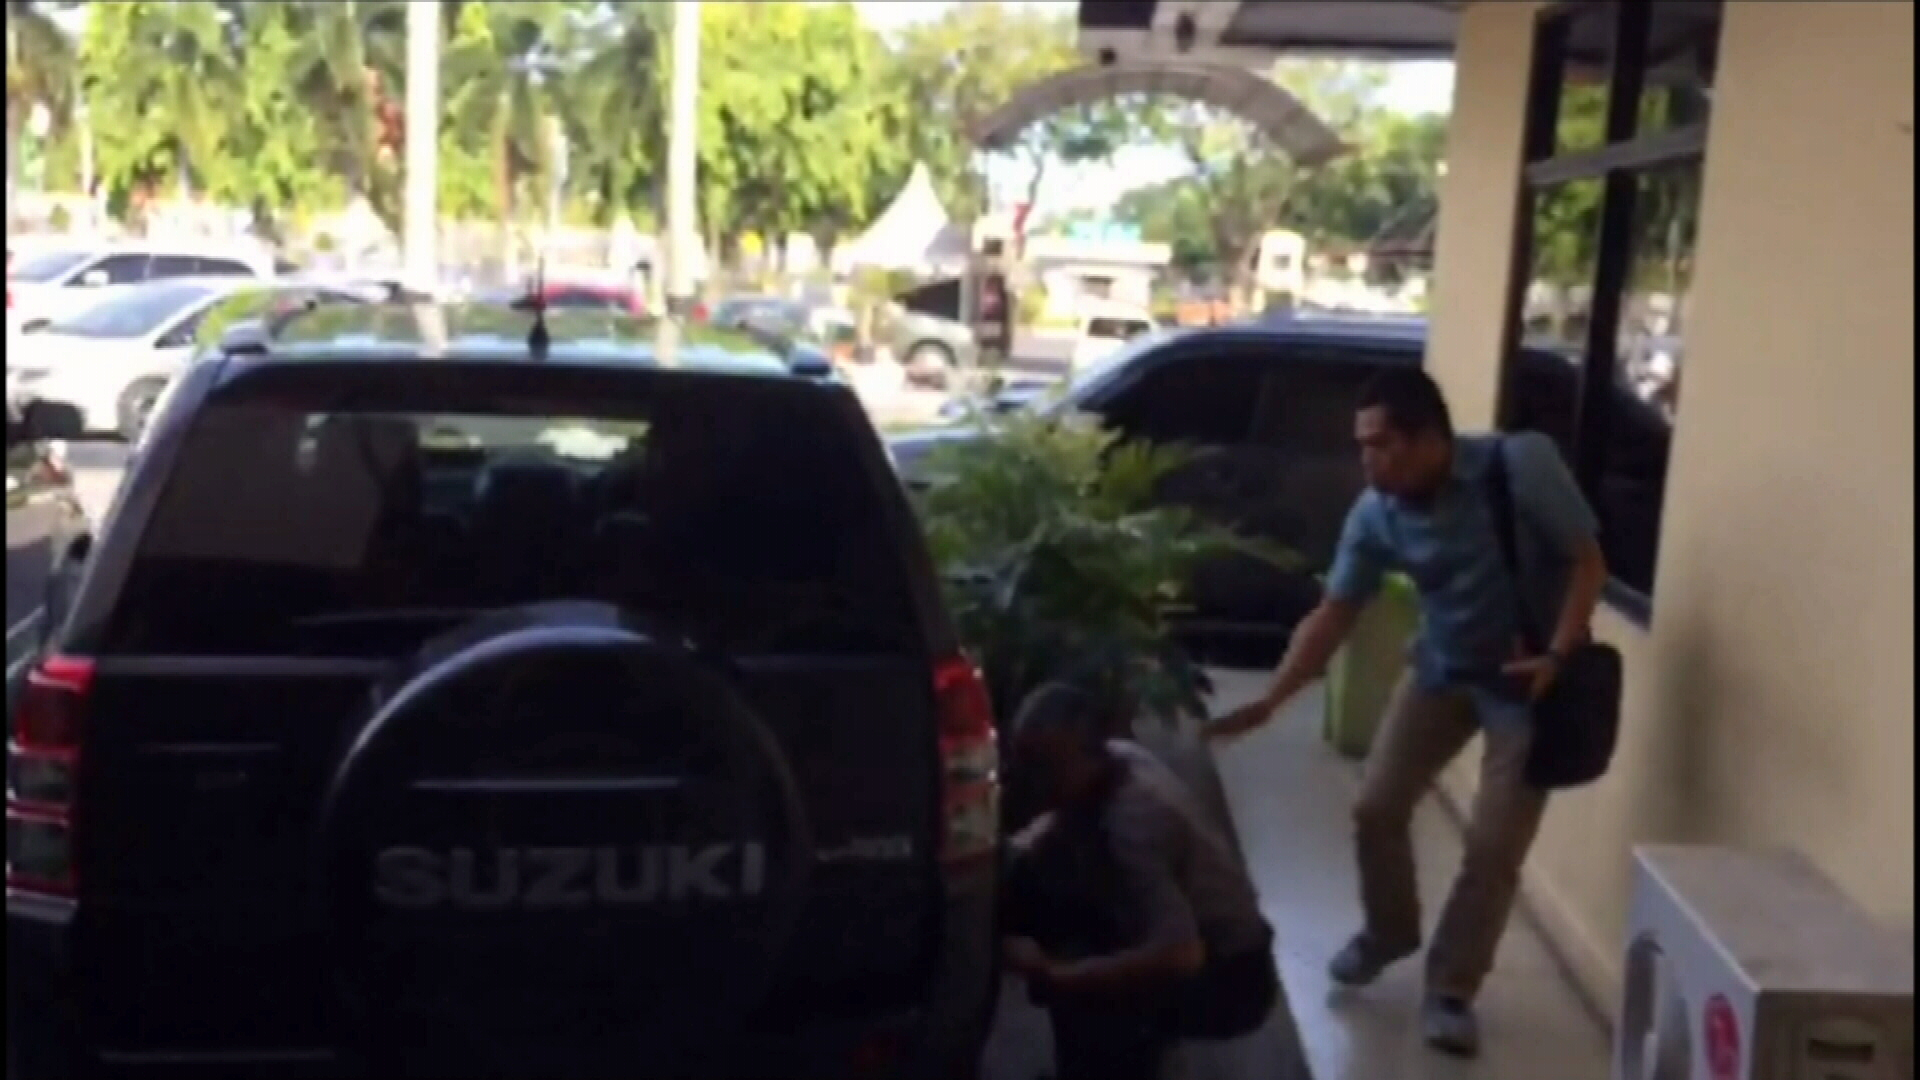 Sumatra police headquarters attacked by 'sword-wielding' men